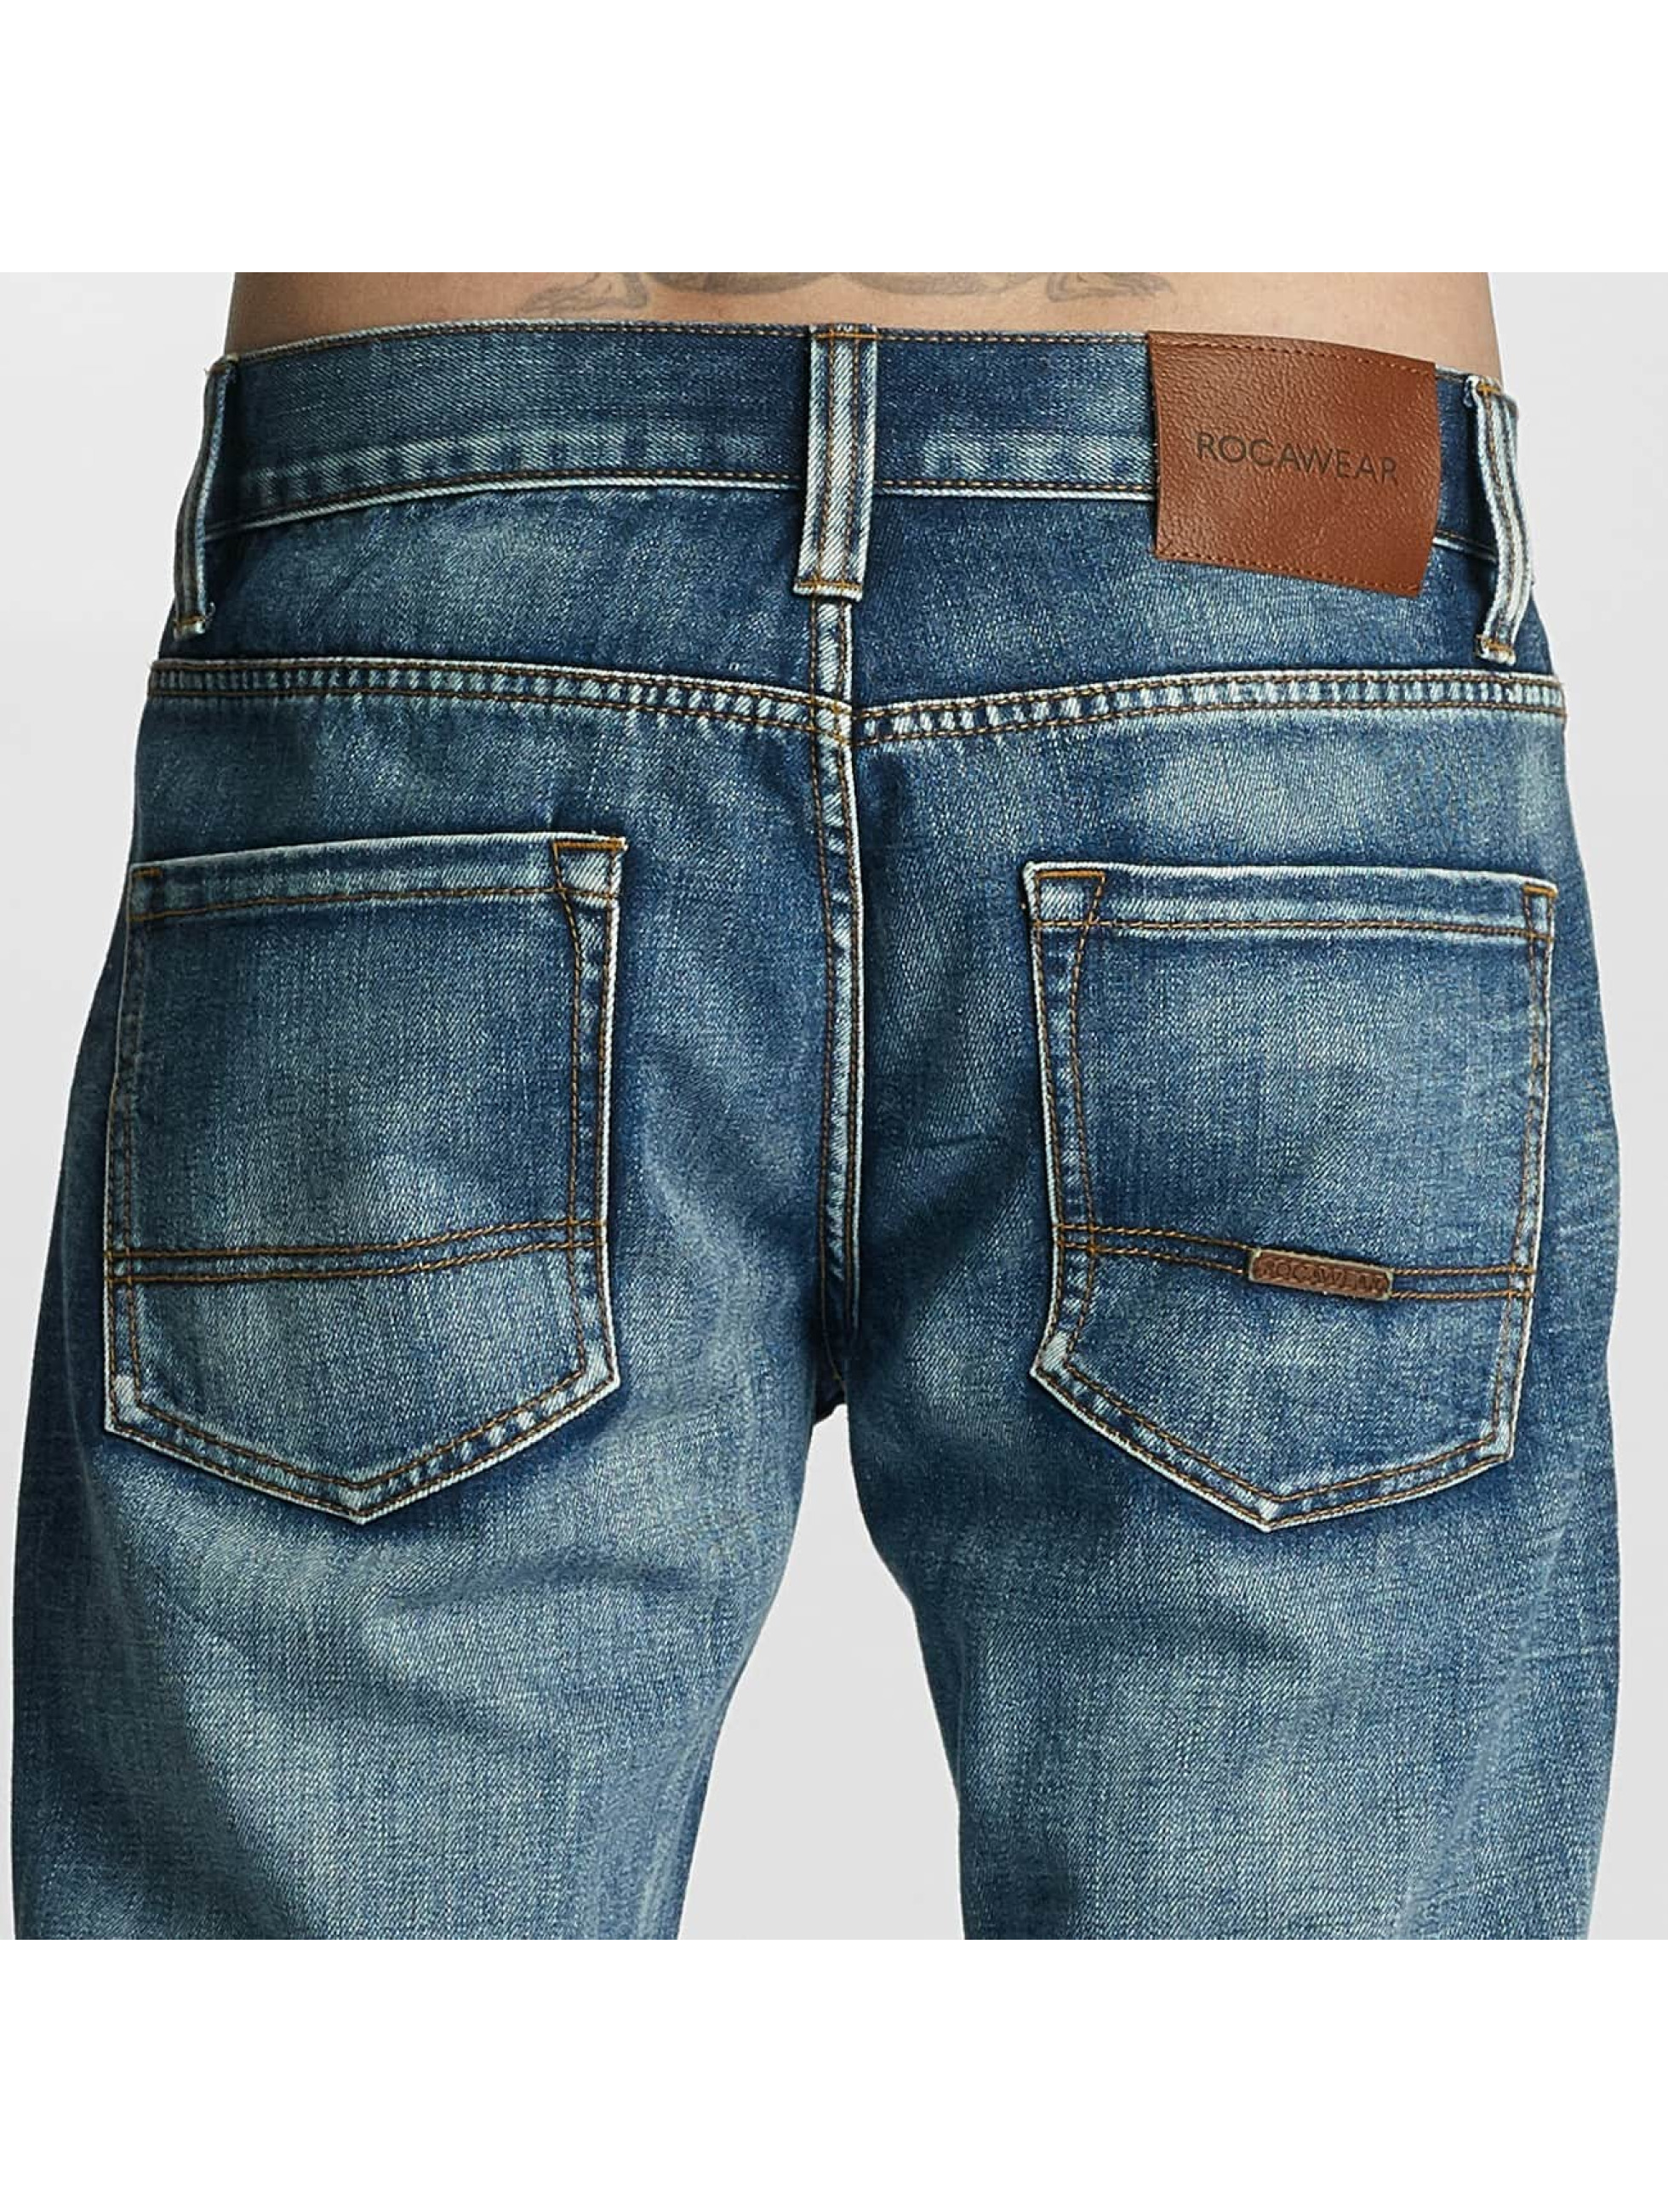 Rocawear Straight Fit Jeans Relaxed Fit blue